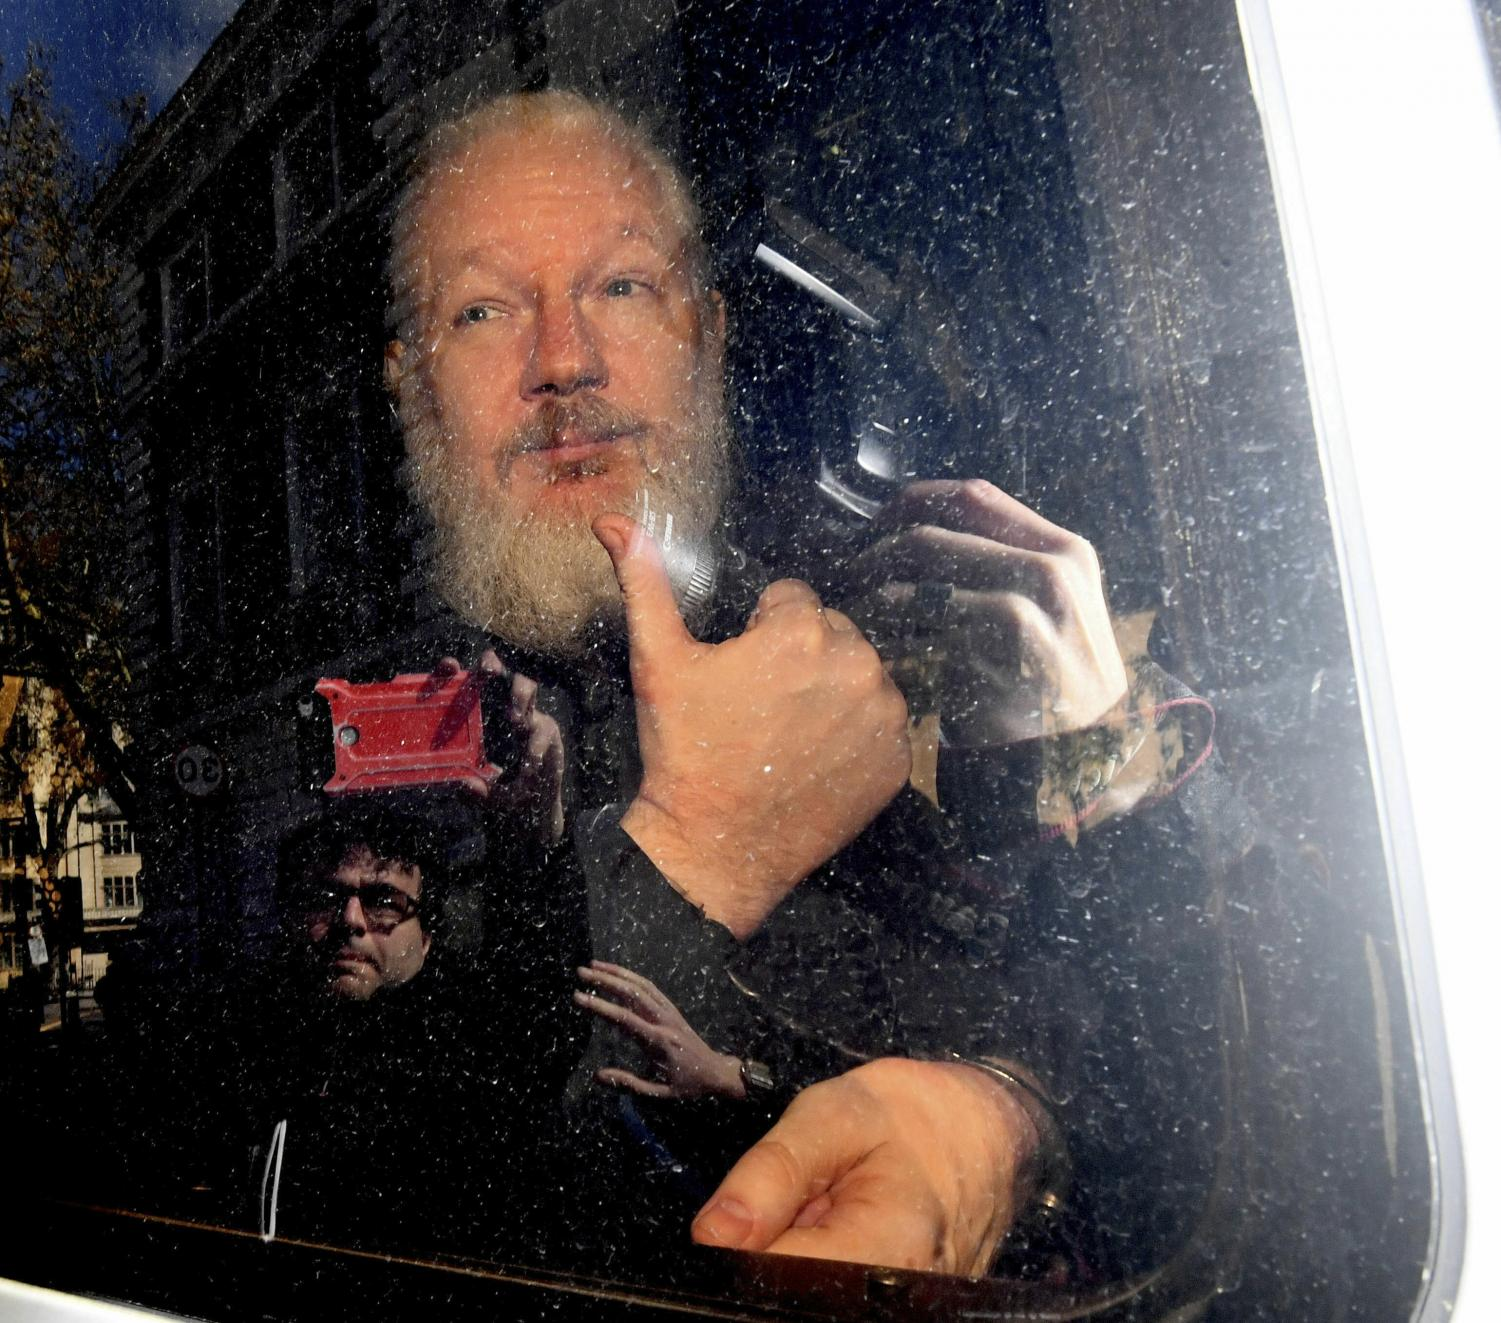 Julian Assange gestures as he arrives at Westminster Magistrates' Court in London, after the WikiLeaks founder was arrested by officers from the Metropolitan Police and taken into custody Thursday April 11, 2019. Police in London arrested WikiLeaks founder Assange at the Ecuadorean embassy Thursday, April 11, 2019 for failing to surrender to the court in 2012, shortly after the South American nation revoked his asylum.